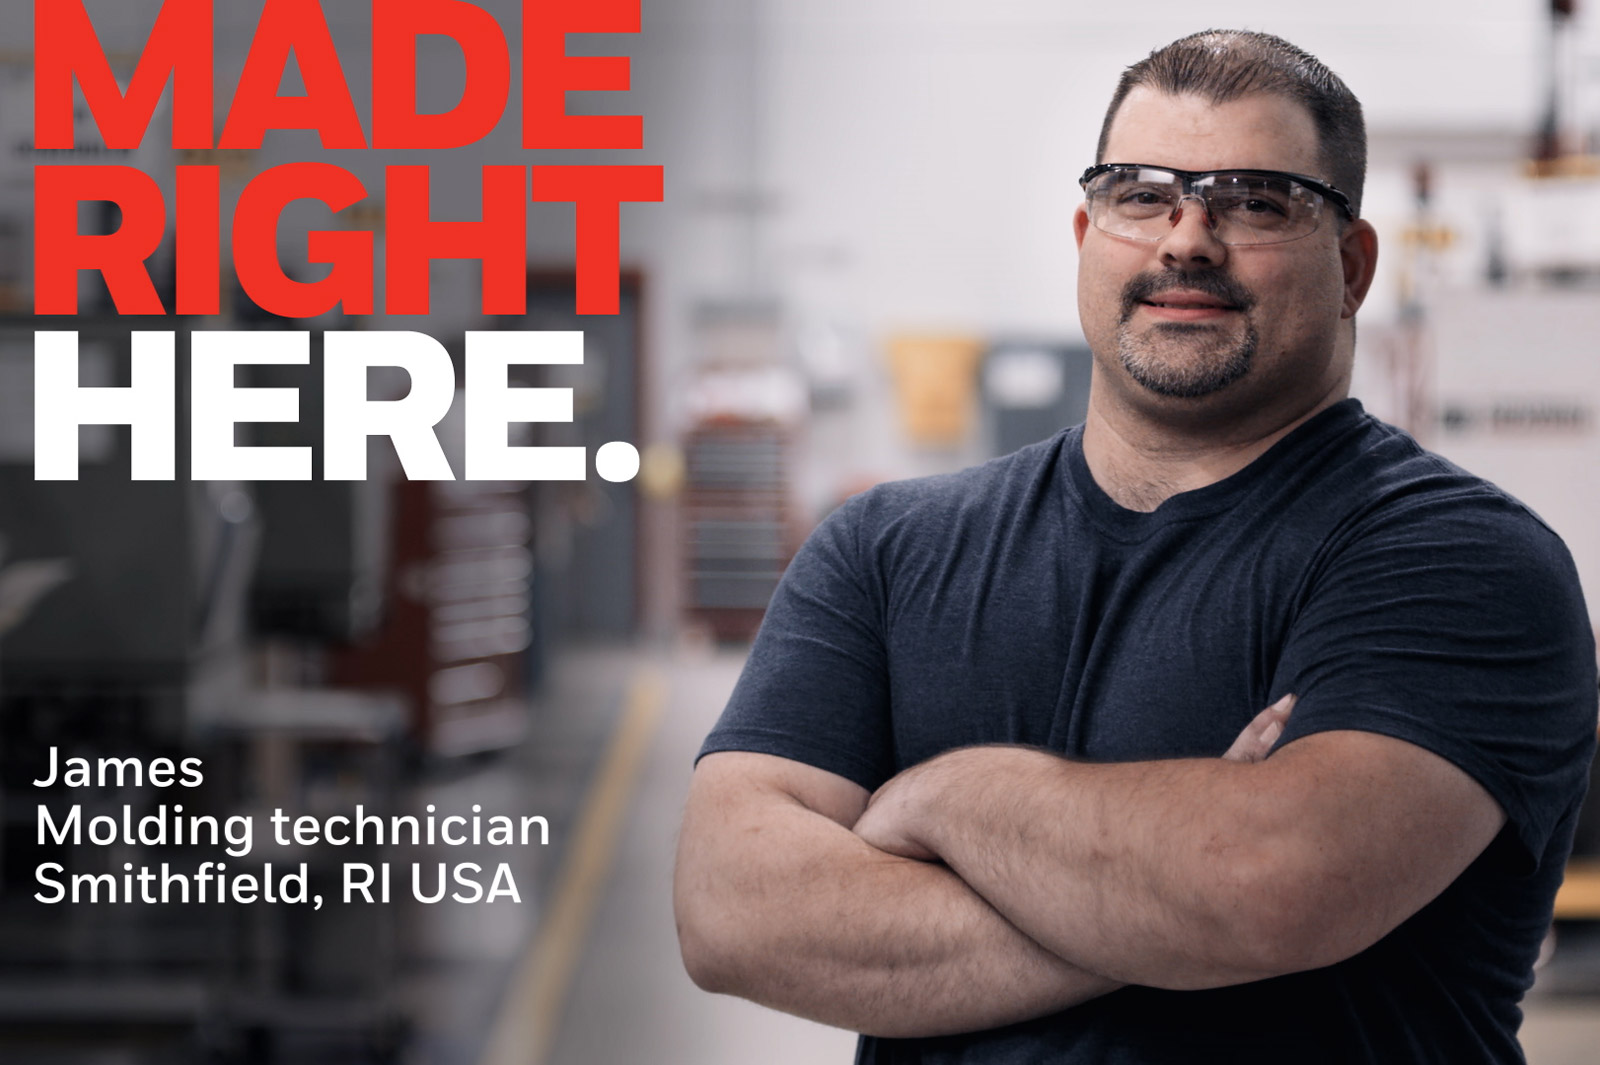 Made Right Here. James, Molding technician, Smithfield, RI USA